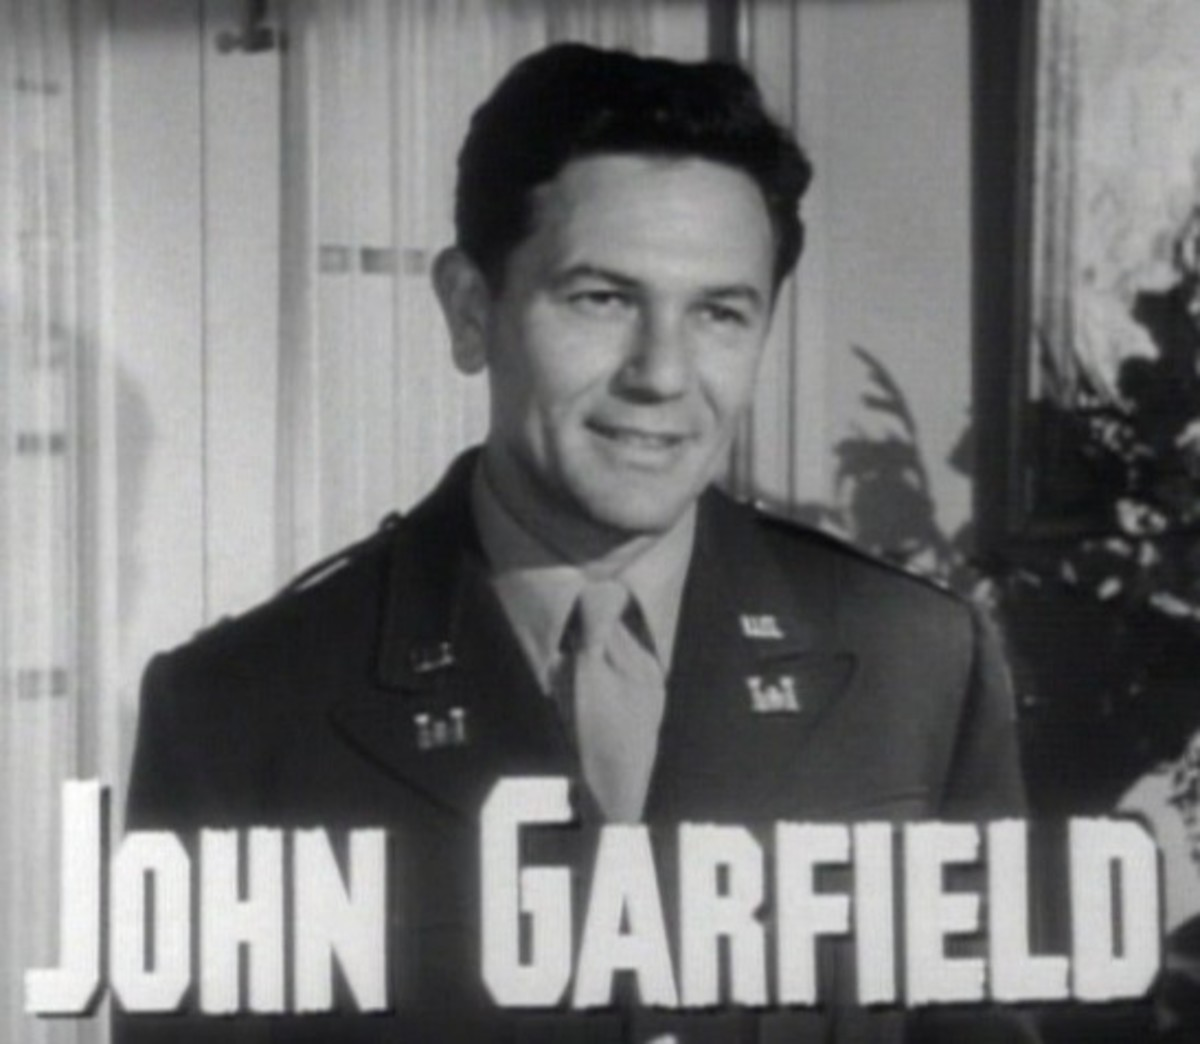 John Garfield in the trailer for Gentleman's Agreement (released the same year as Body and Soul)